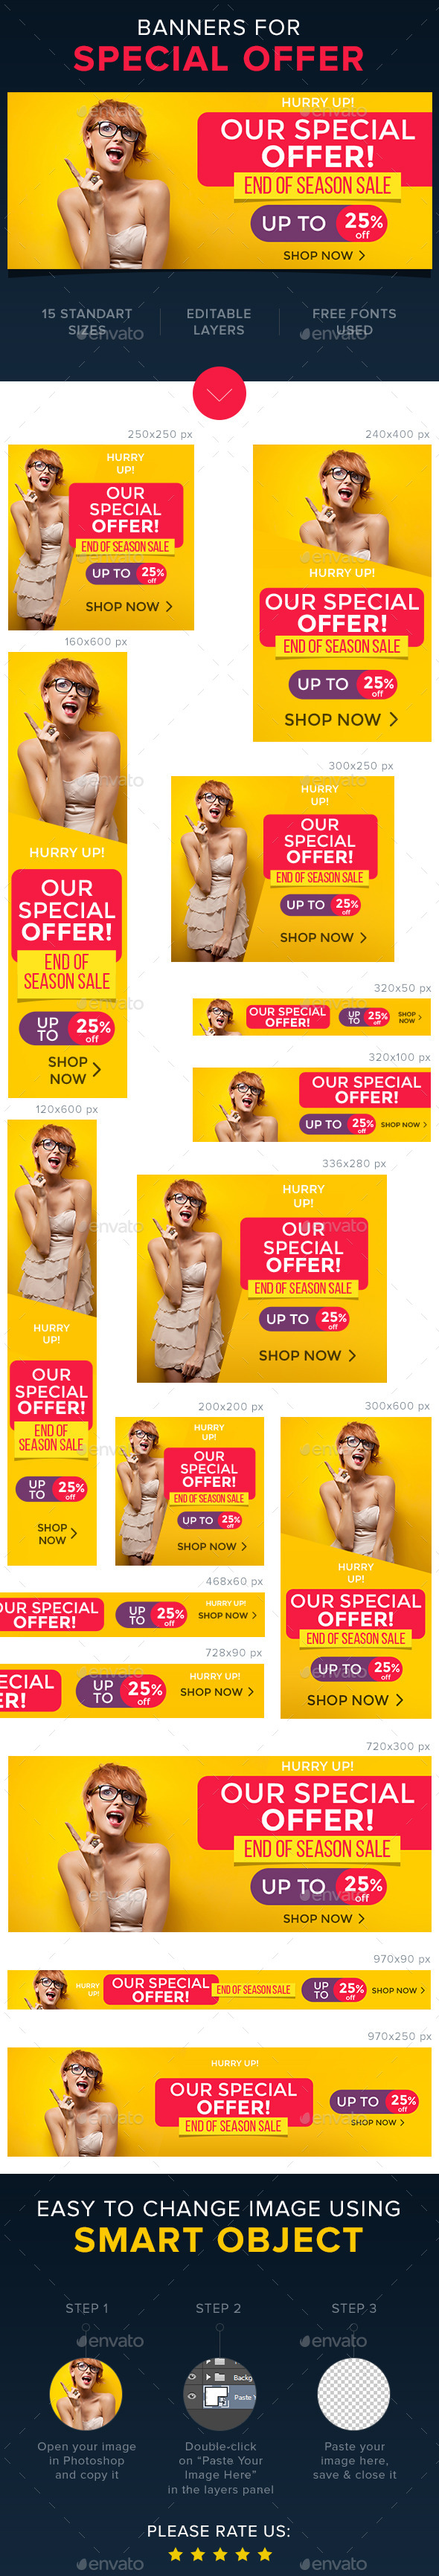 Special Offer Banners  - Banners & Ads Web Elements